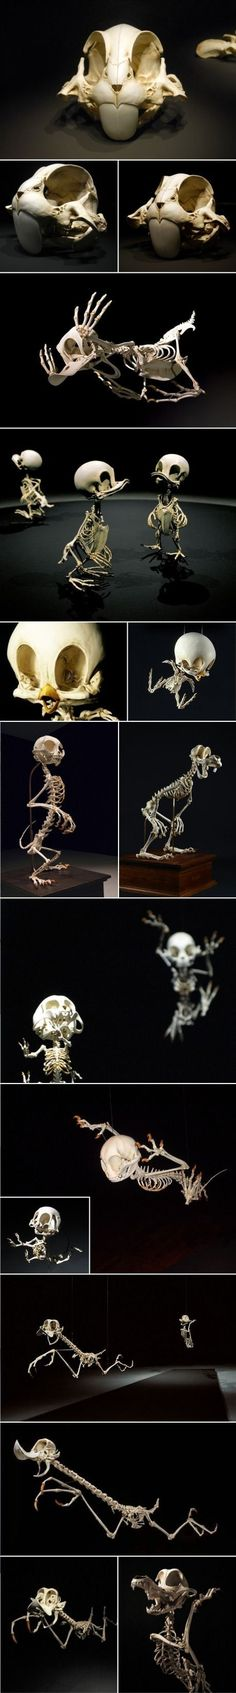 Skeletons of cartoon Characters.  Seriously disturbing.  If you need help figuring them out -  Bugs Bunny, Donald Duck, Huey/Duey/Louie, Tweety,  Pluto, Goofy, Tom and Jerry, Wile E. Coyote and the Road Runner.